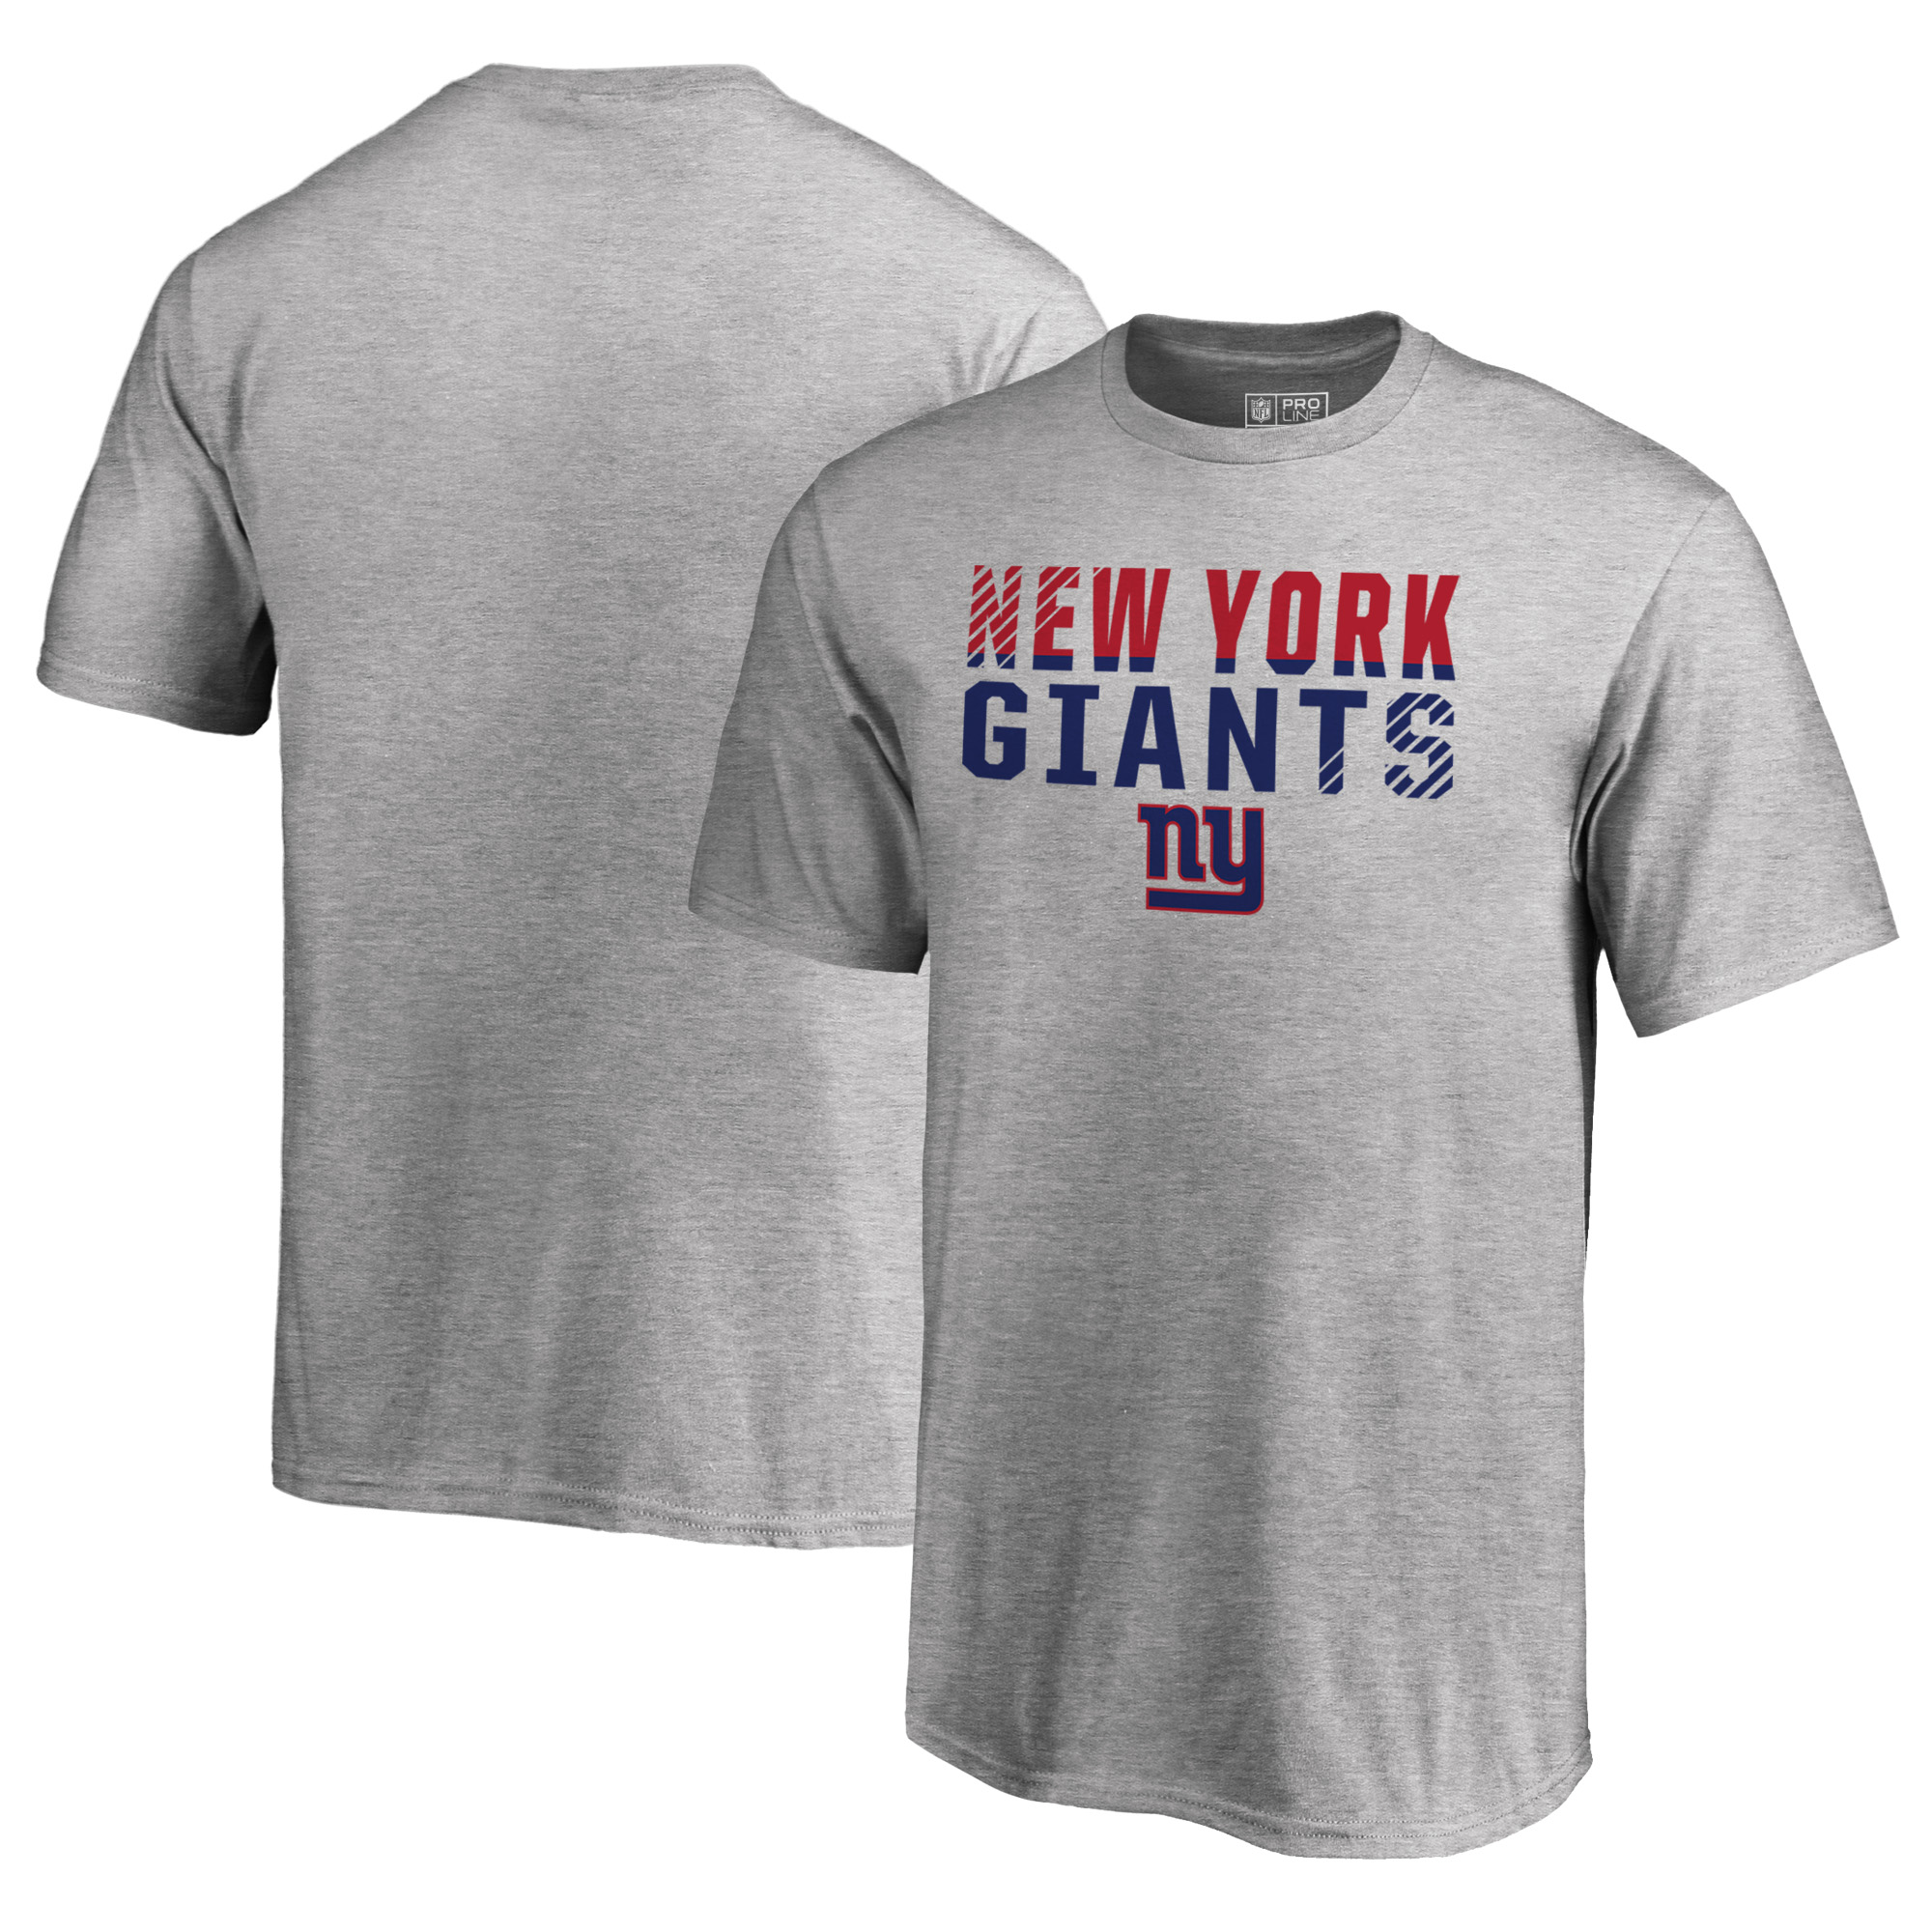 New York Giants NFL Pro Line by Fanatics Branded Youth Iconic Collection Fade Out T-Shirt - Ash